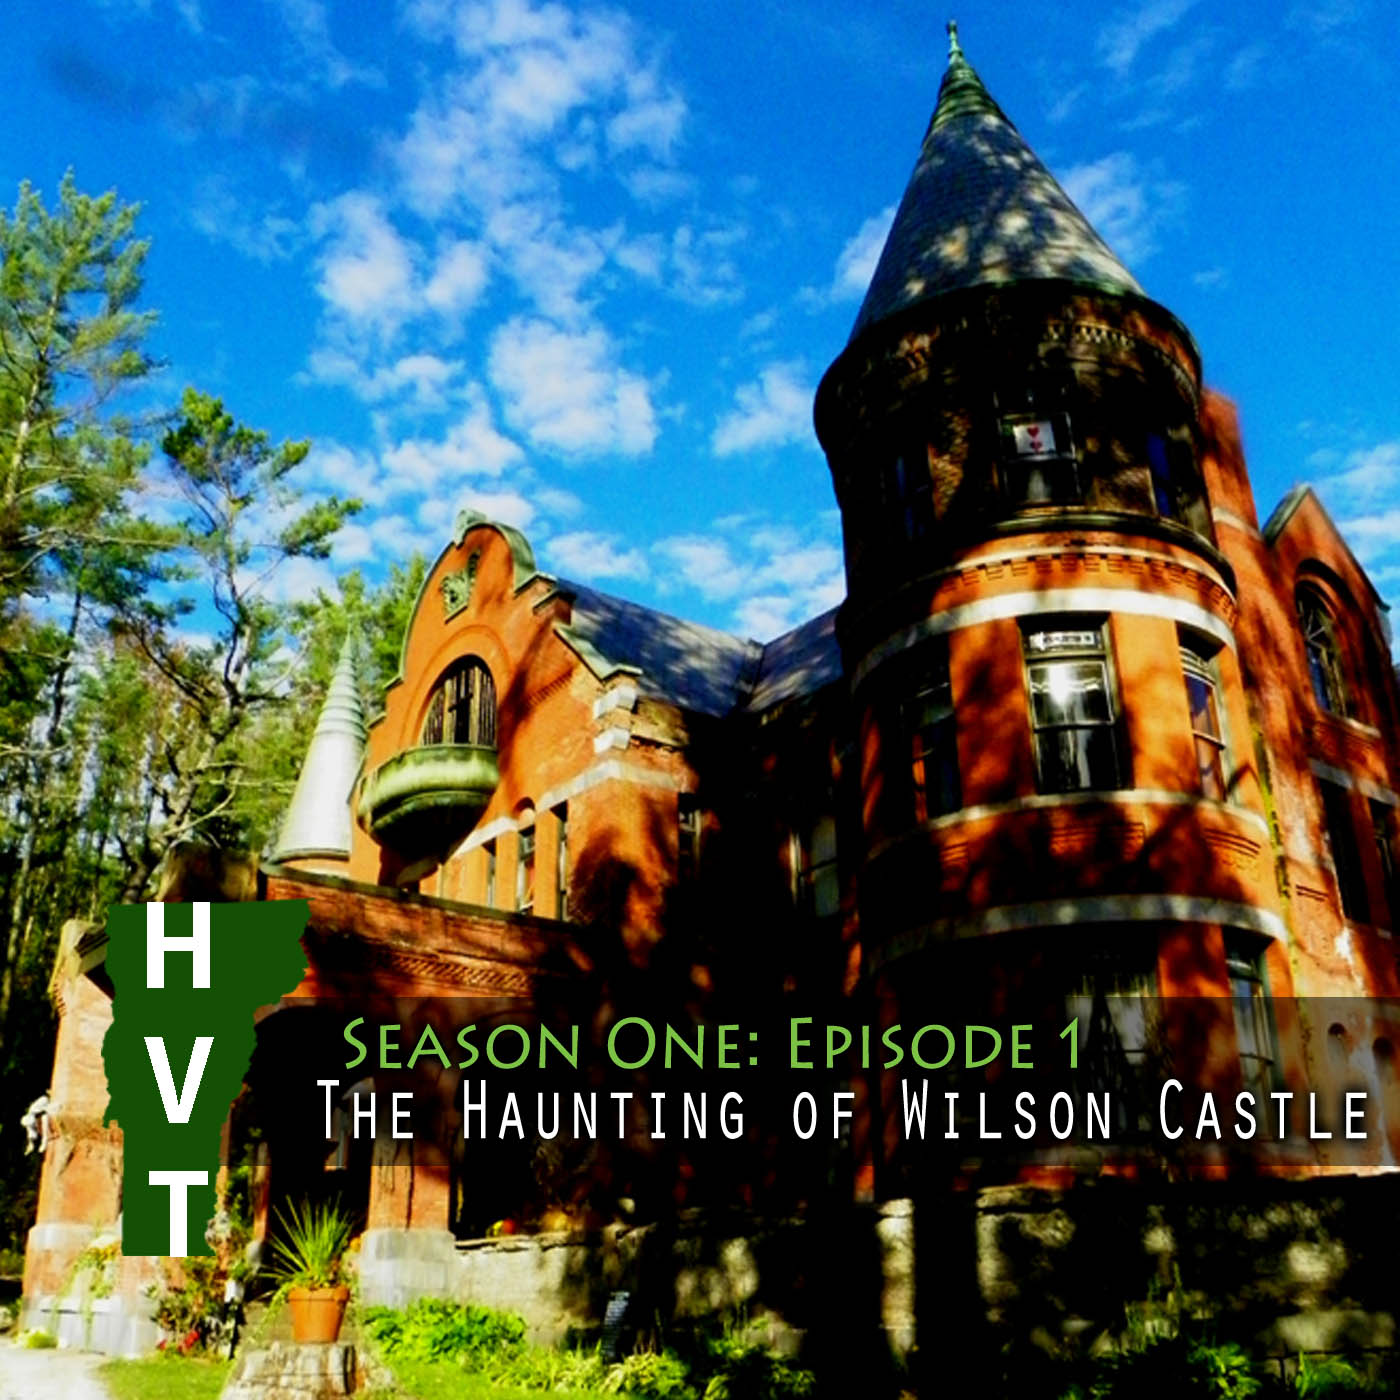 S1: Ep. 1: The Haunting of Wilson Castle